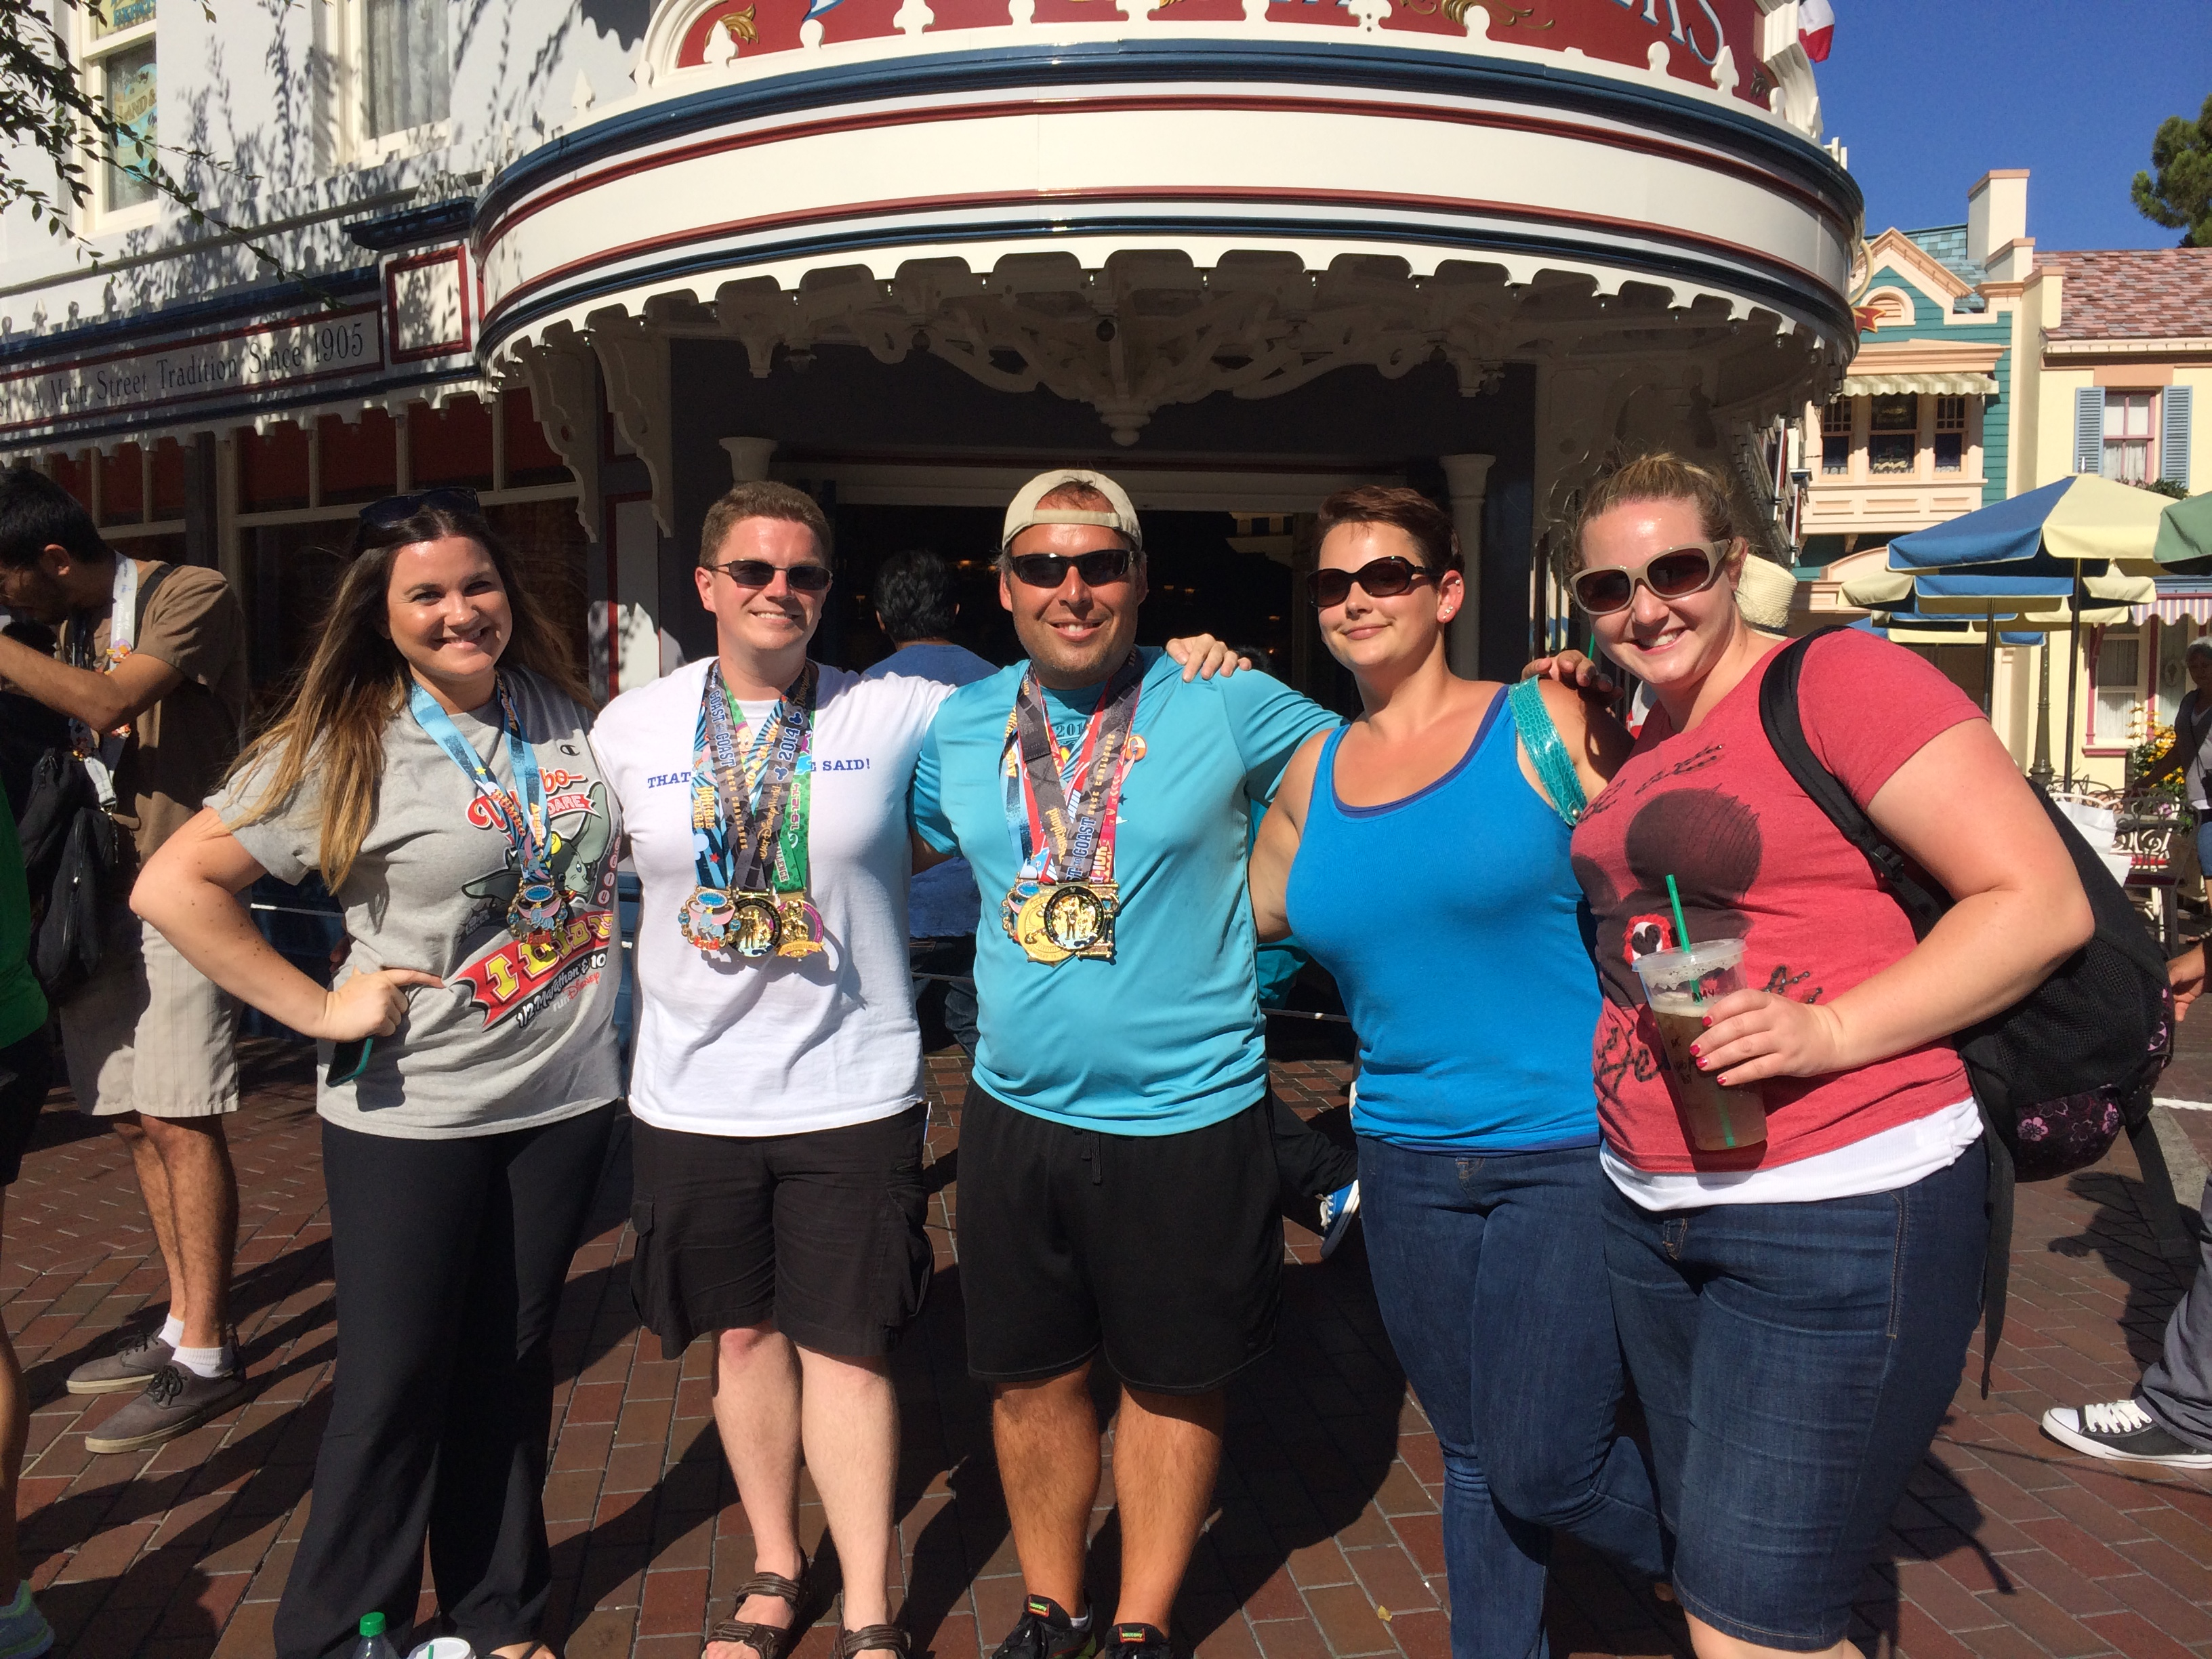 Race Review: 2014 runDisney Dumbo Double Dare & Coast to Coast Challenge (Part Three)